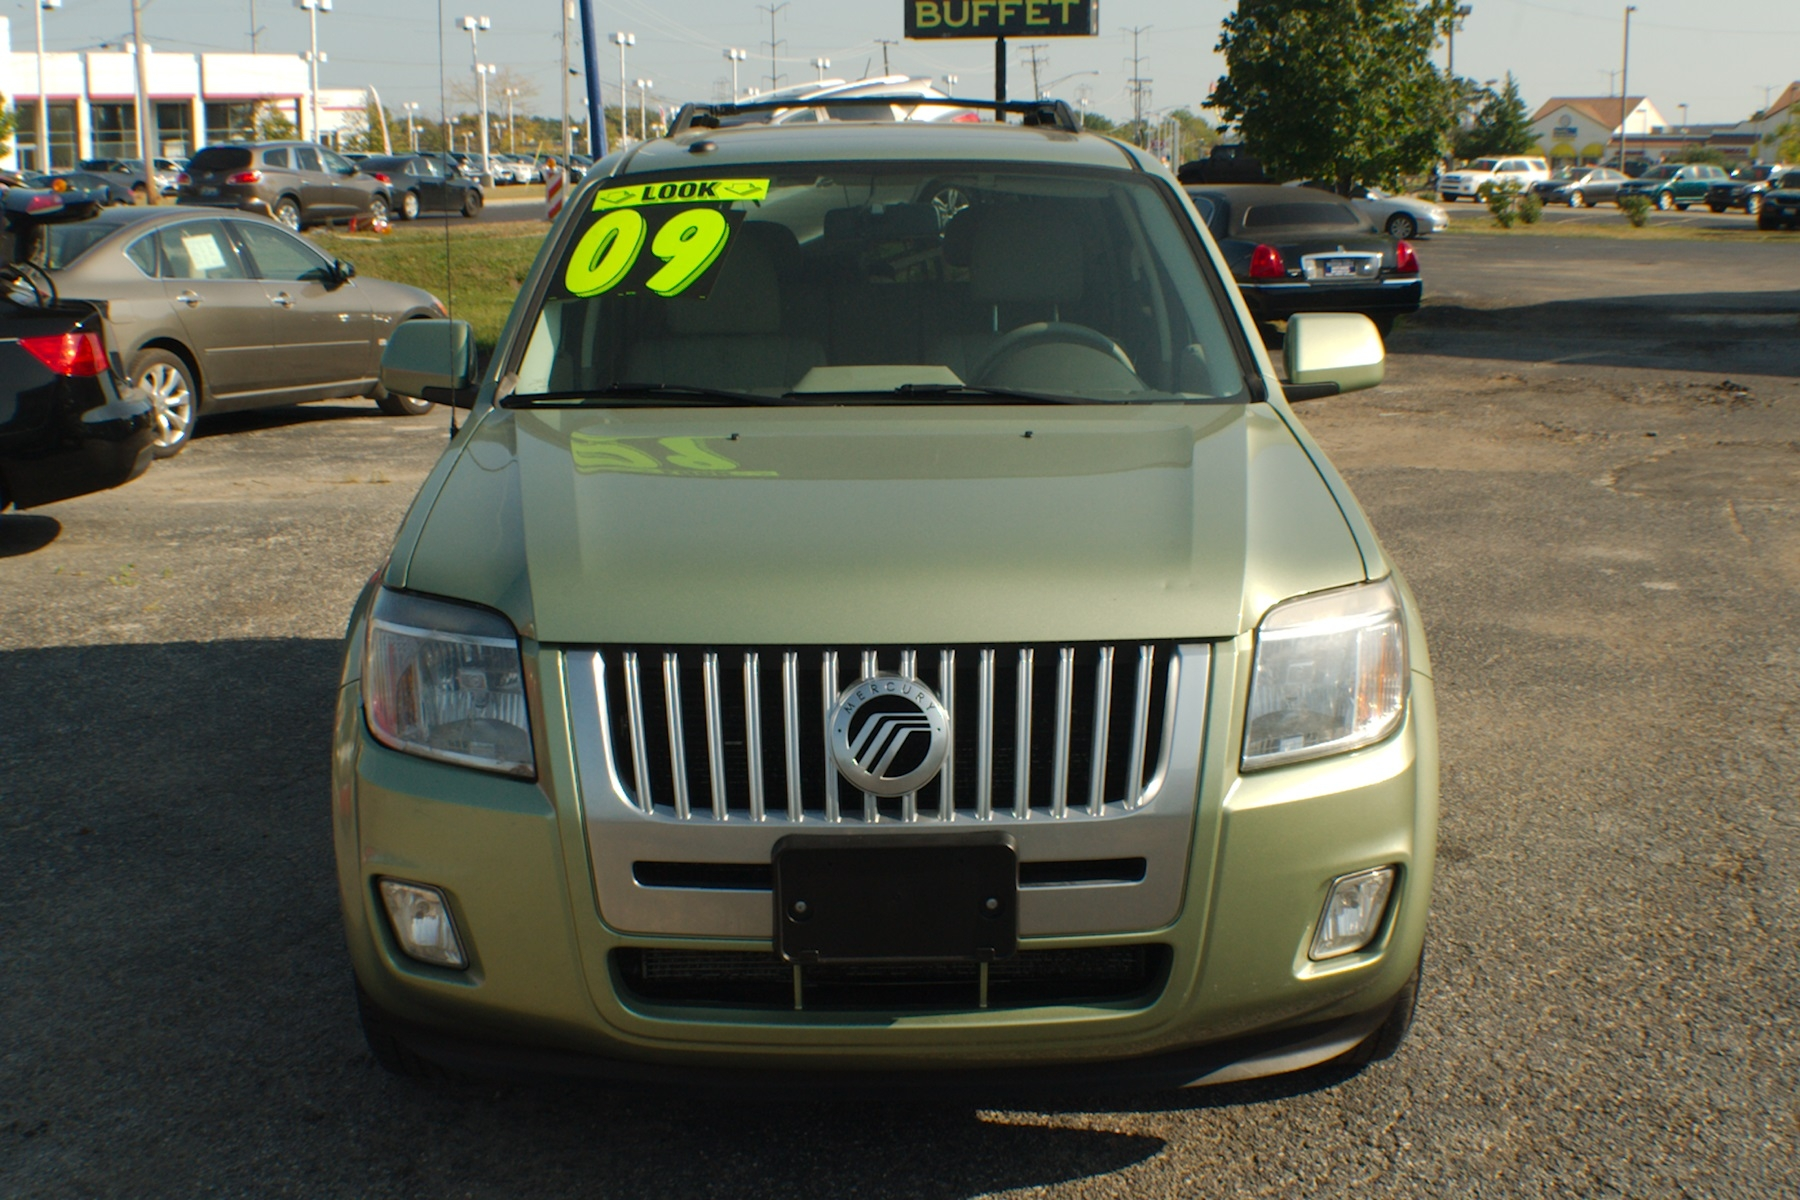 2009 Mercury Mariner Green SUV Used Car Sale Gurnee Kenosha Mchenry Chicago Illinois